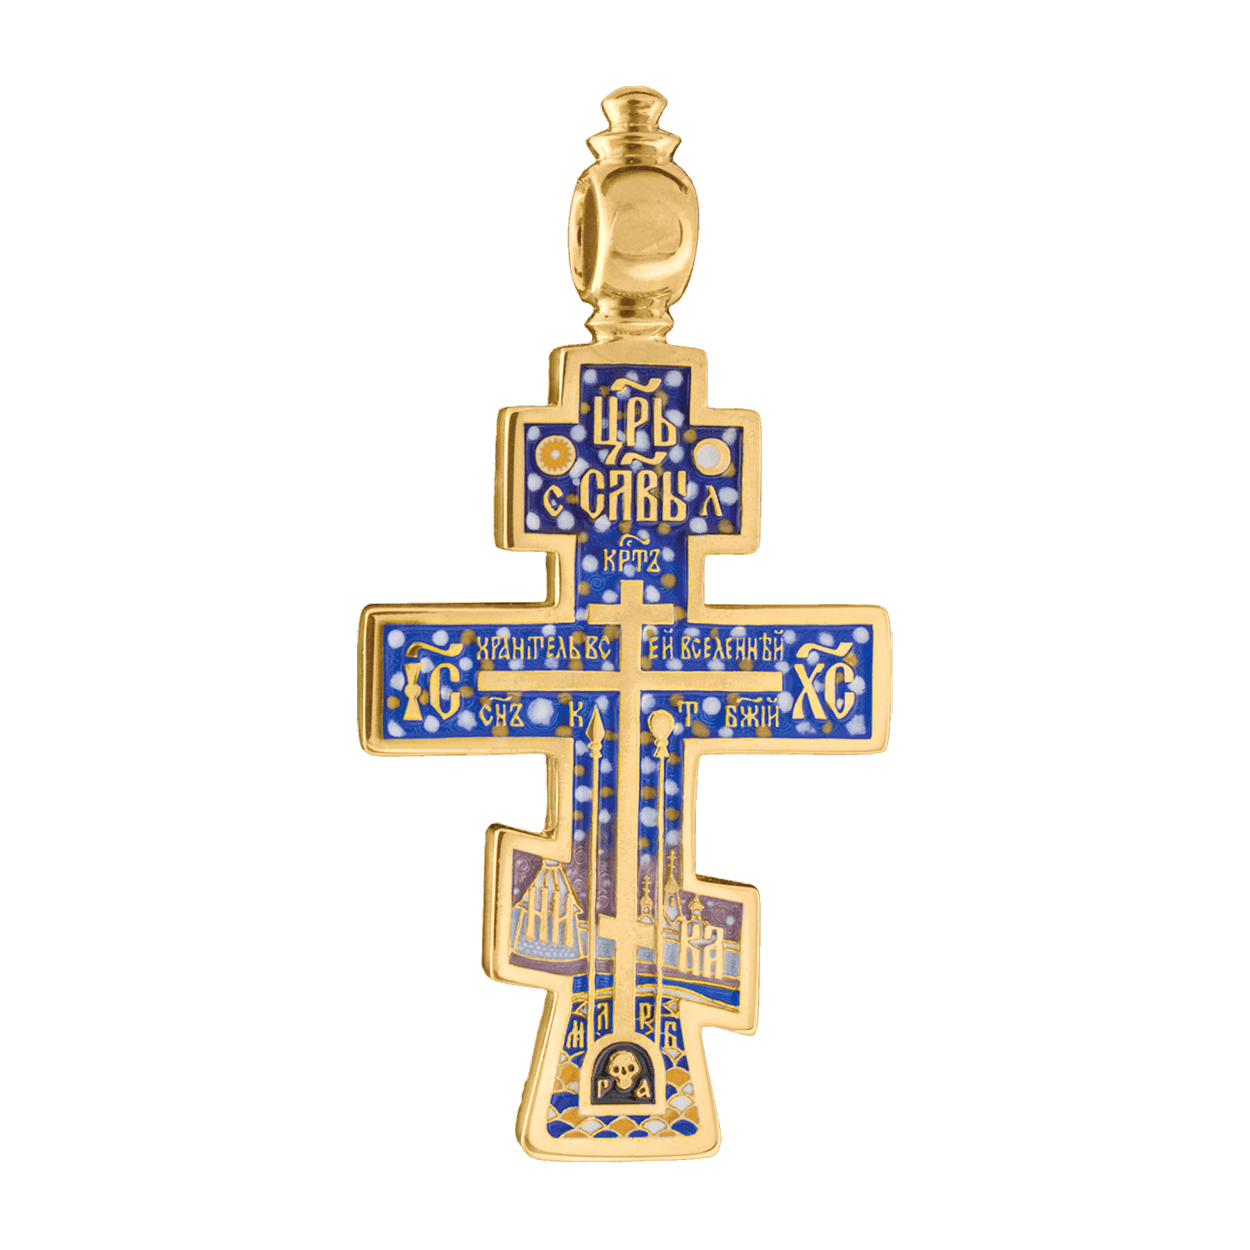 KS101_A-Russian-Orthodox-silver-enamaled-Cross-pendant-OLD-BELIEVERS-CROSS-Master-Jeweler-Fedorov-min (1)-min